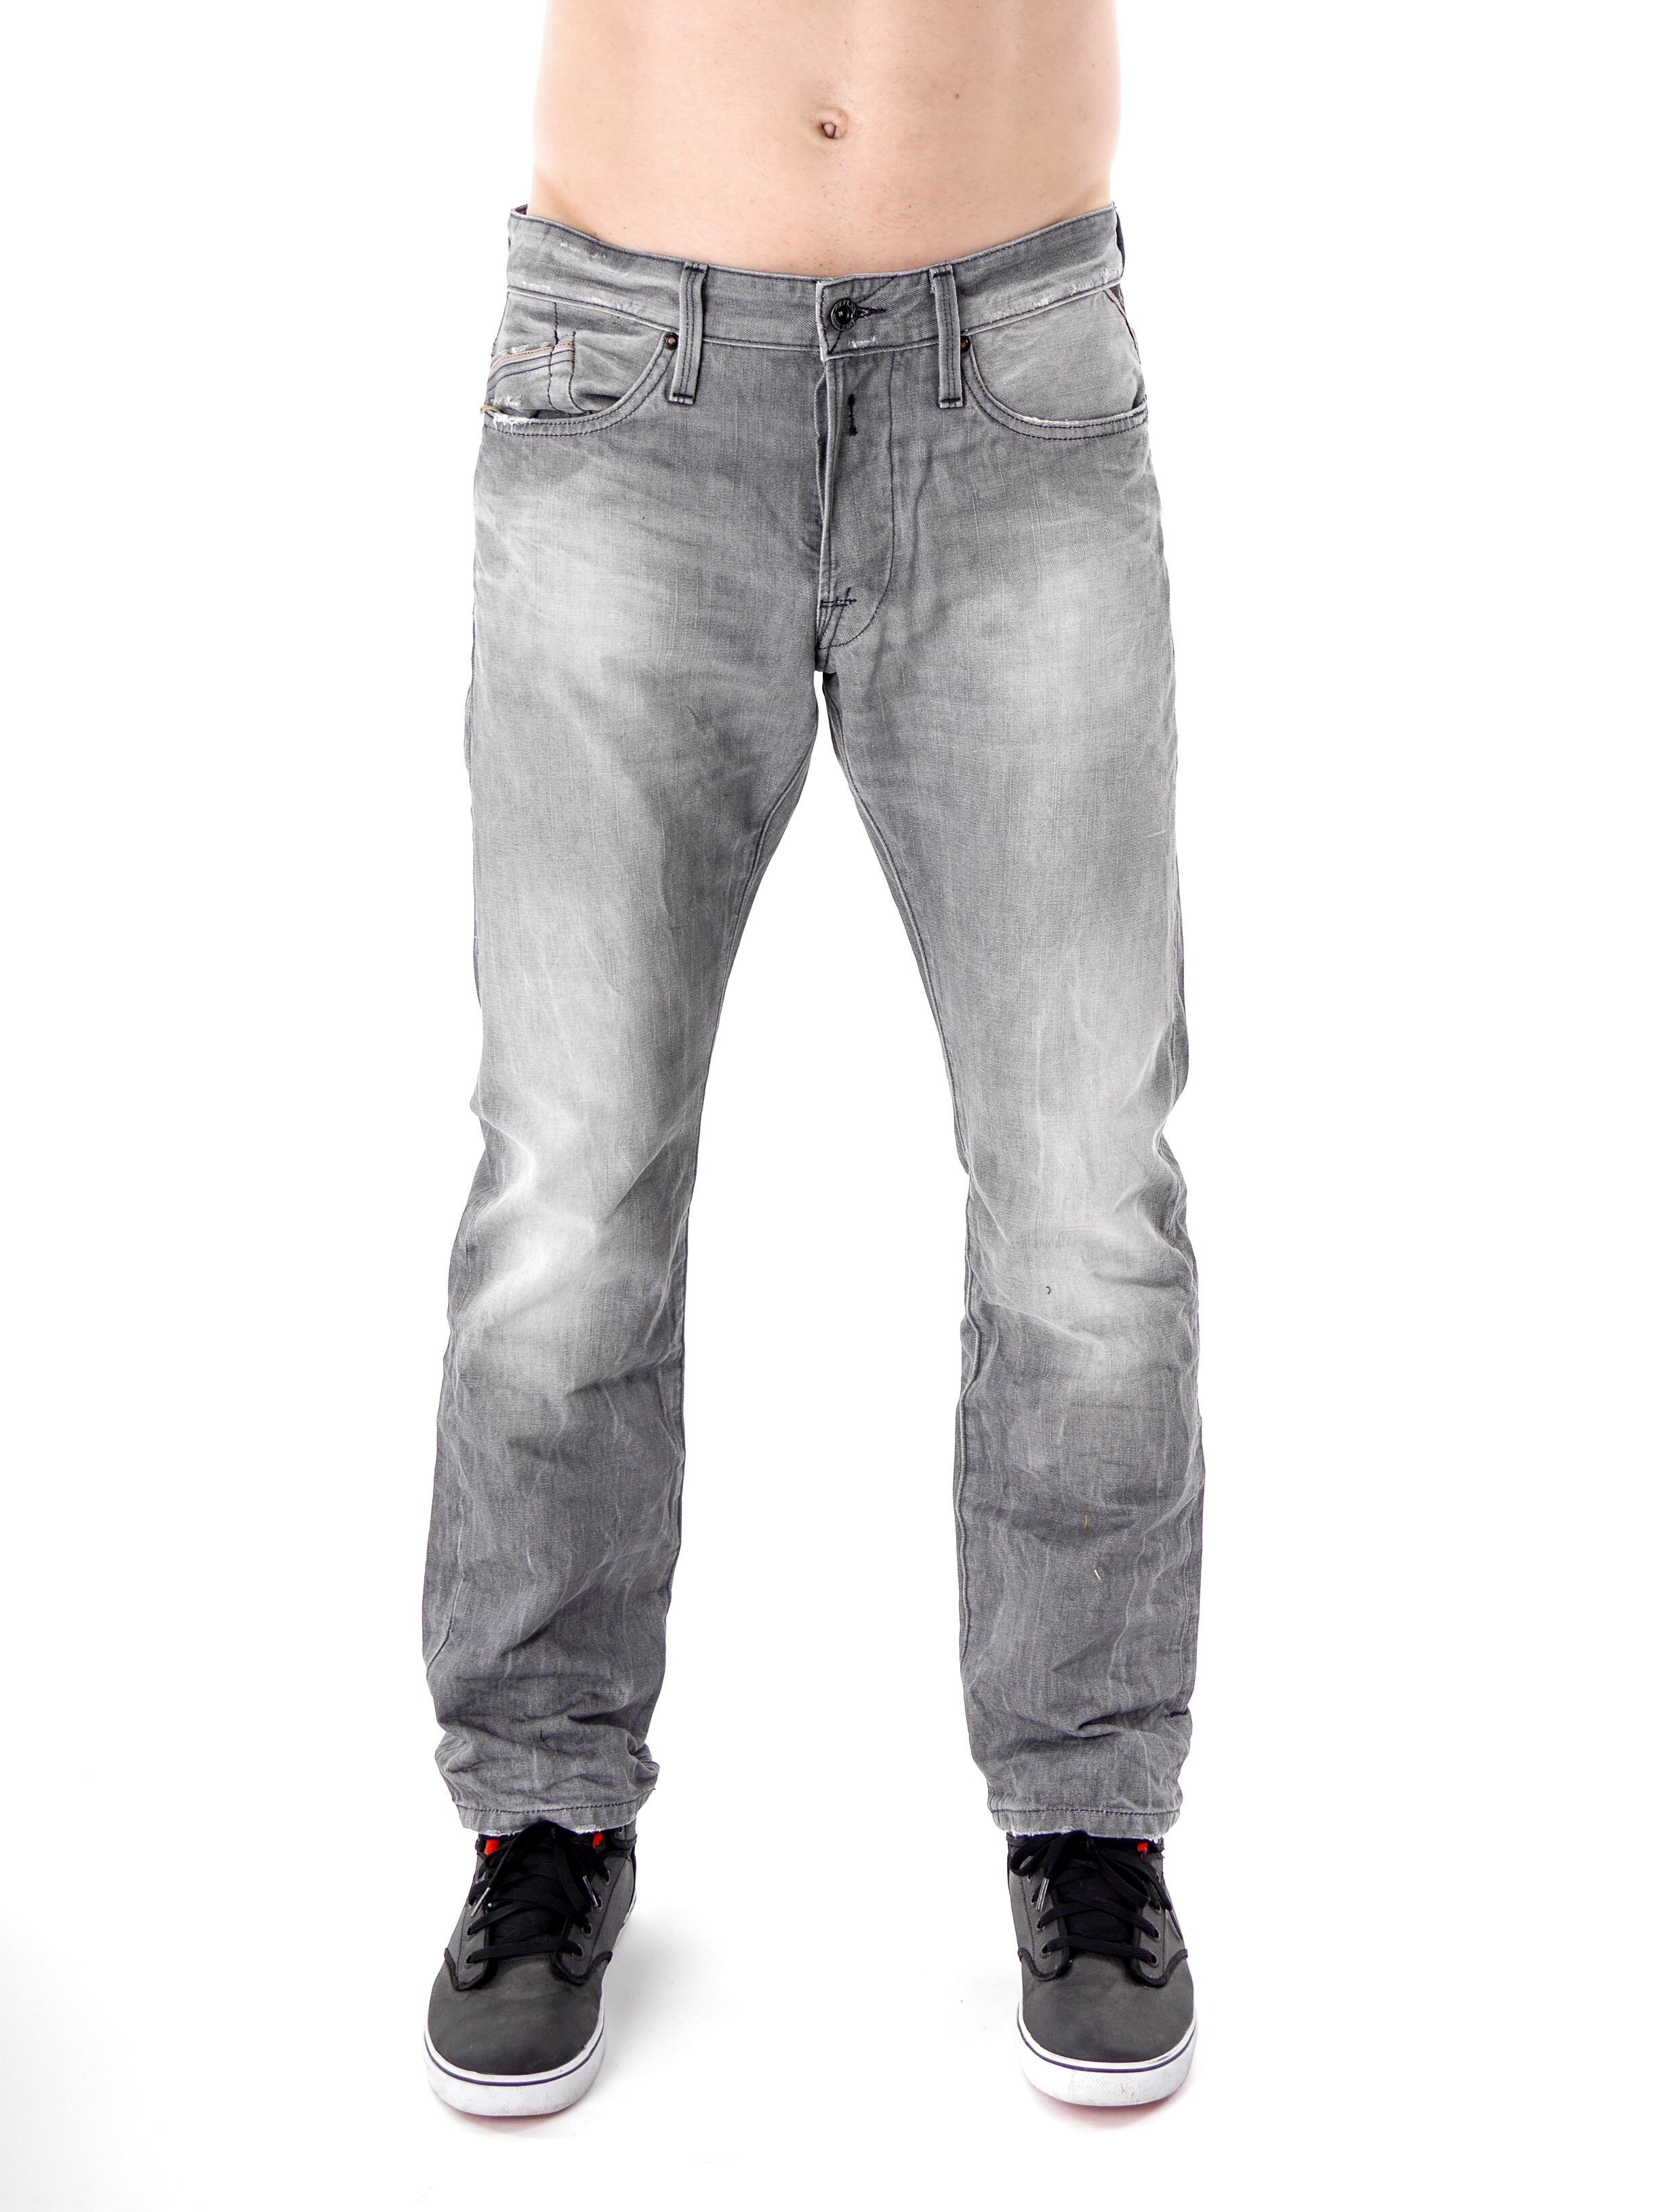 replay jeans hose waitom grau knopfleiste 5 pocket regular slim fit ebay. Black Bedroom Furniture Sets. Home Design Ideas